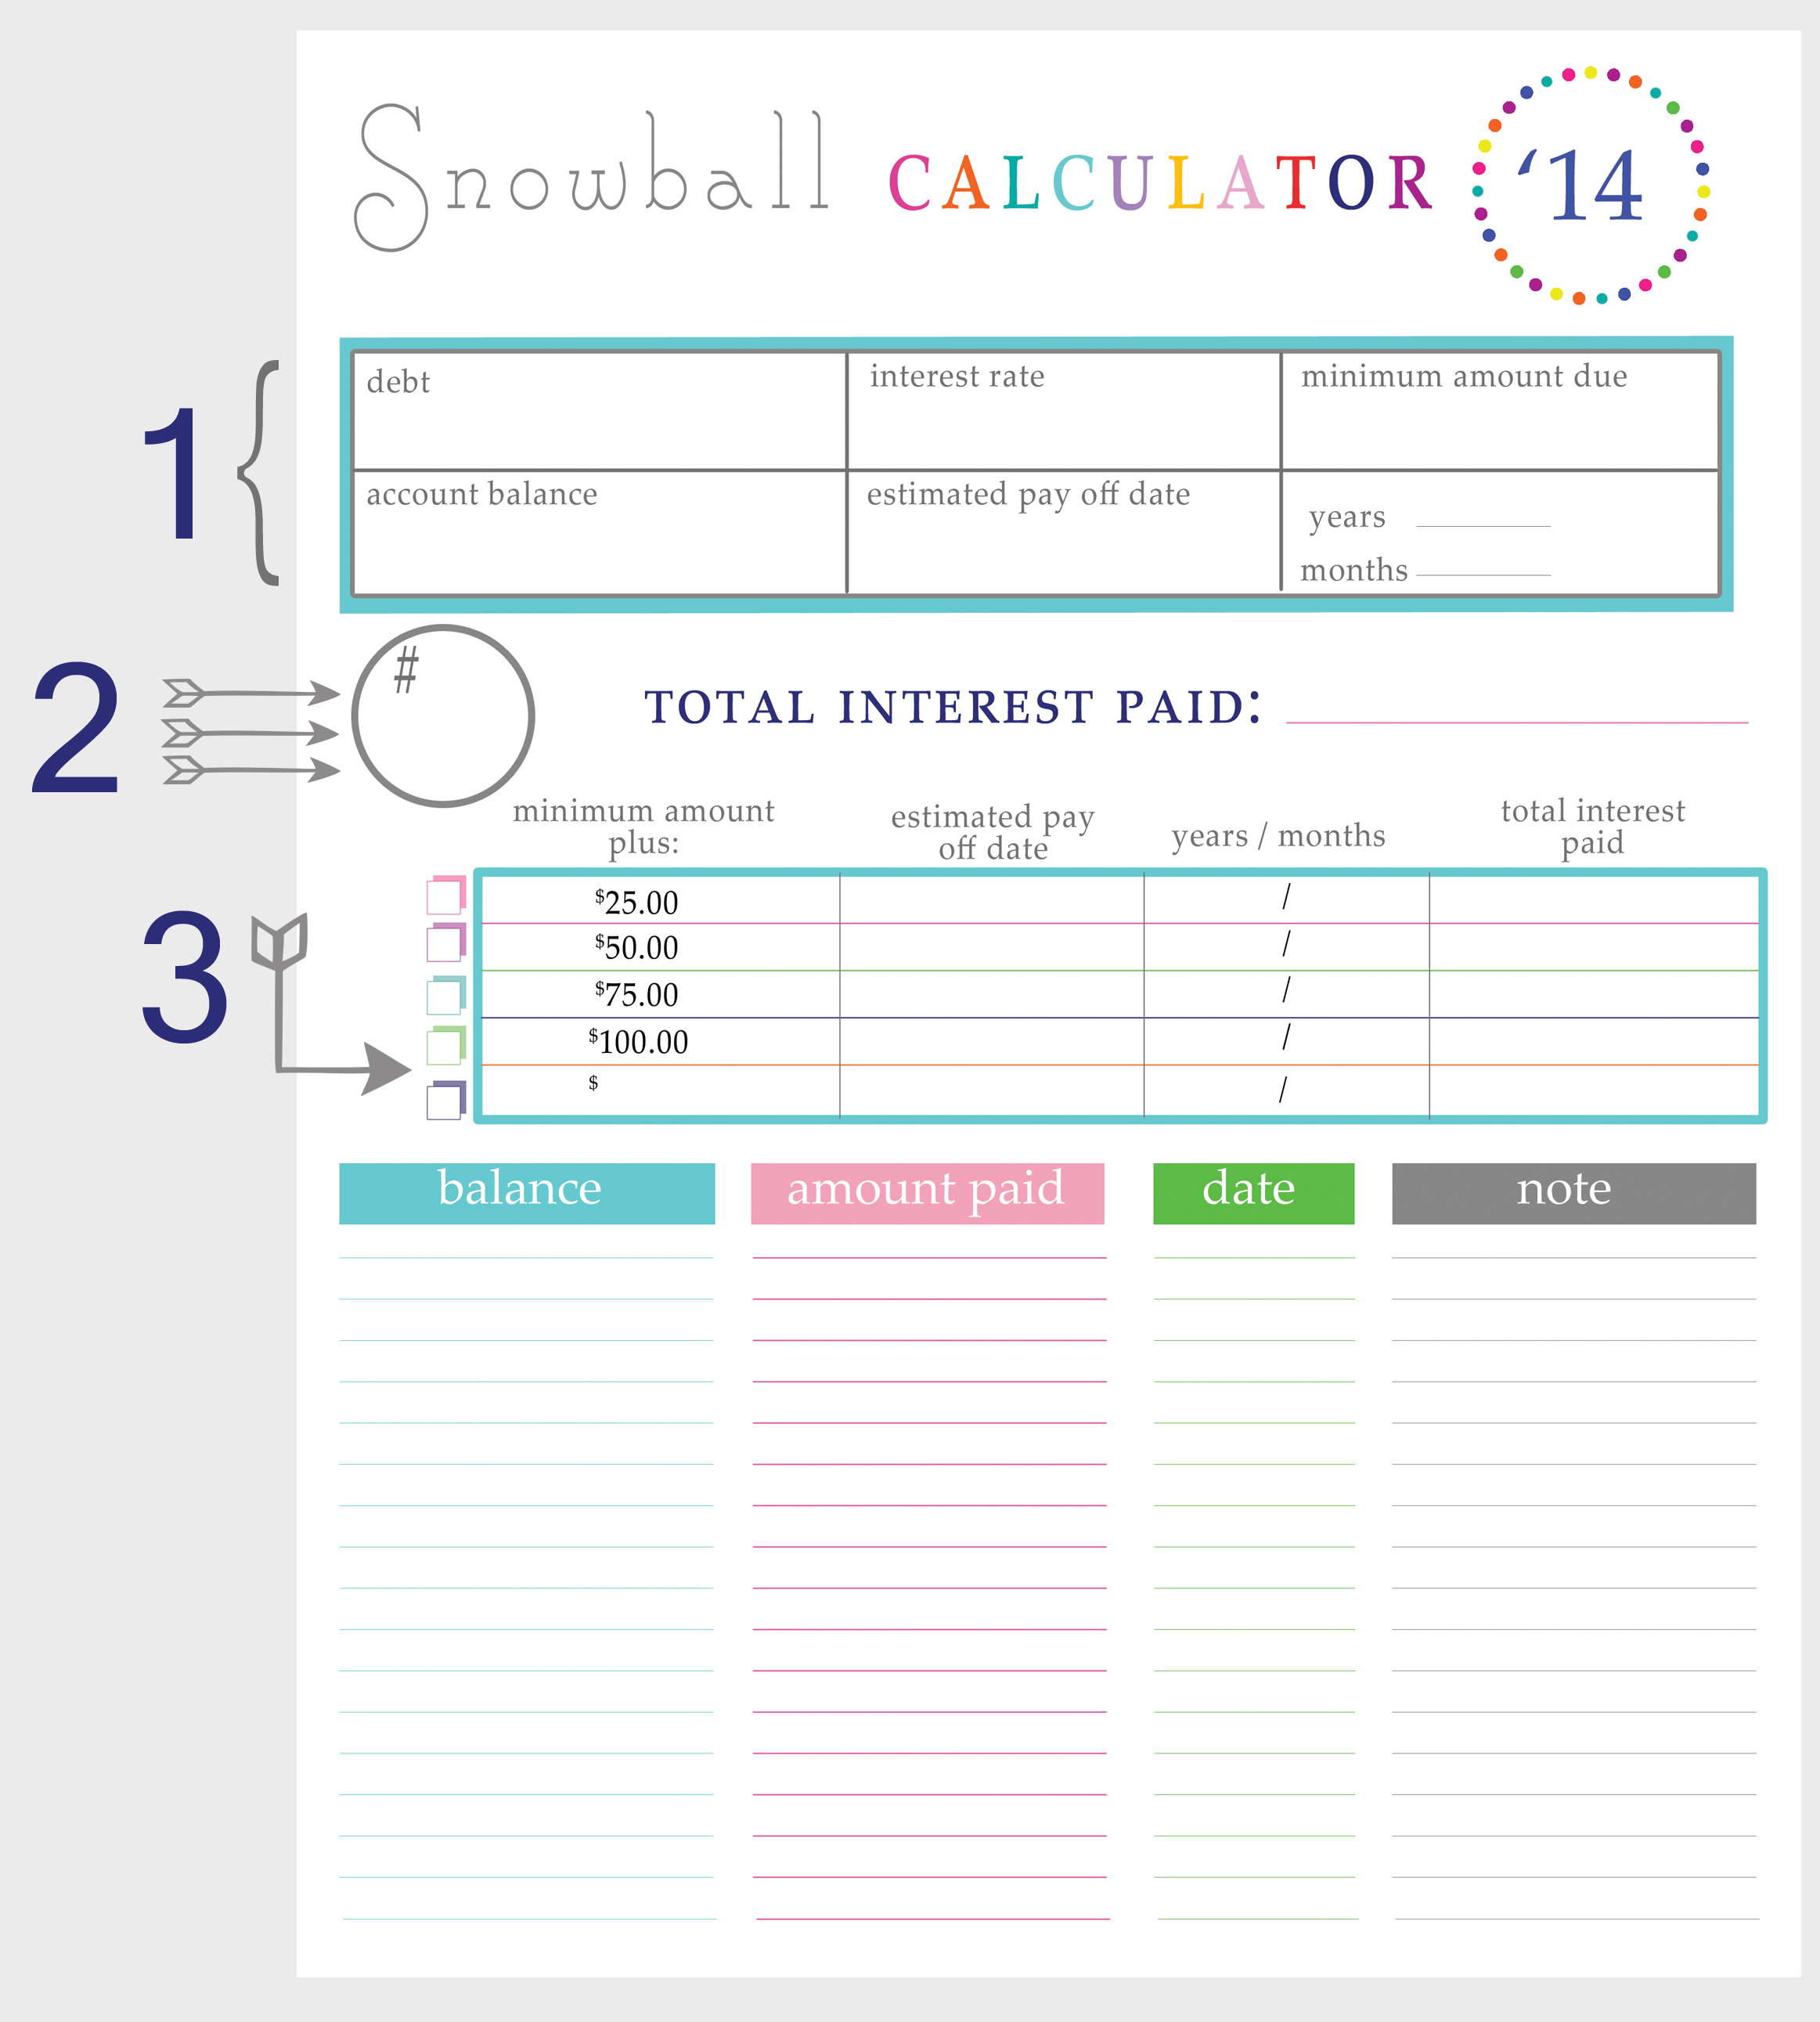 Worksheets Debt Worksheets paying off debt worksheets snowball calculator breakdown